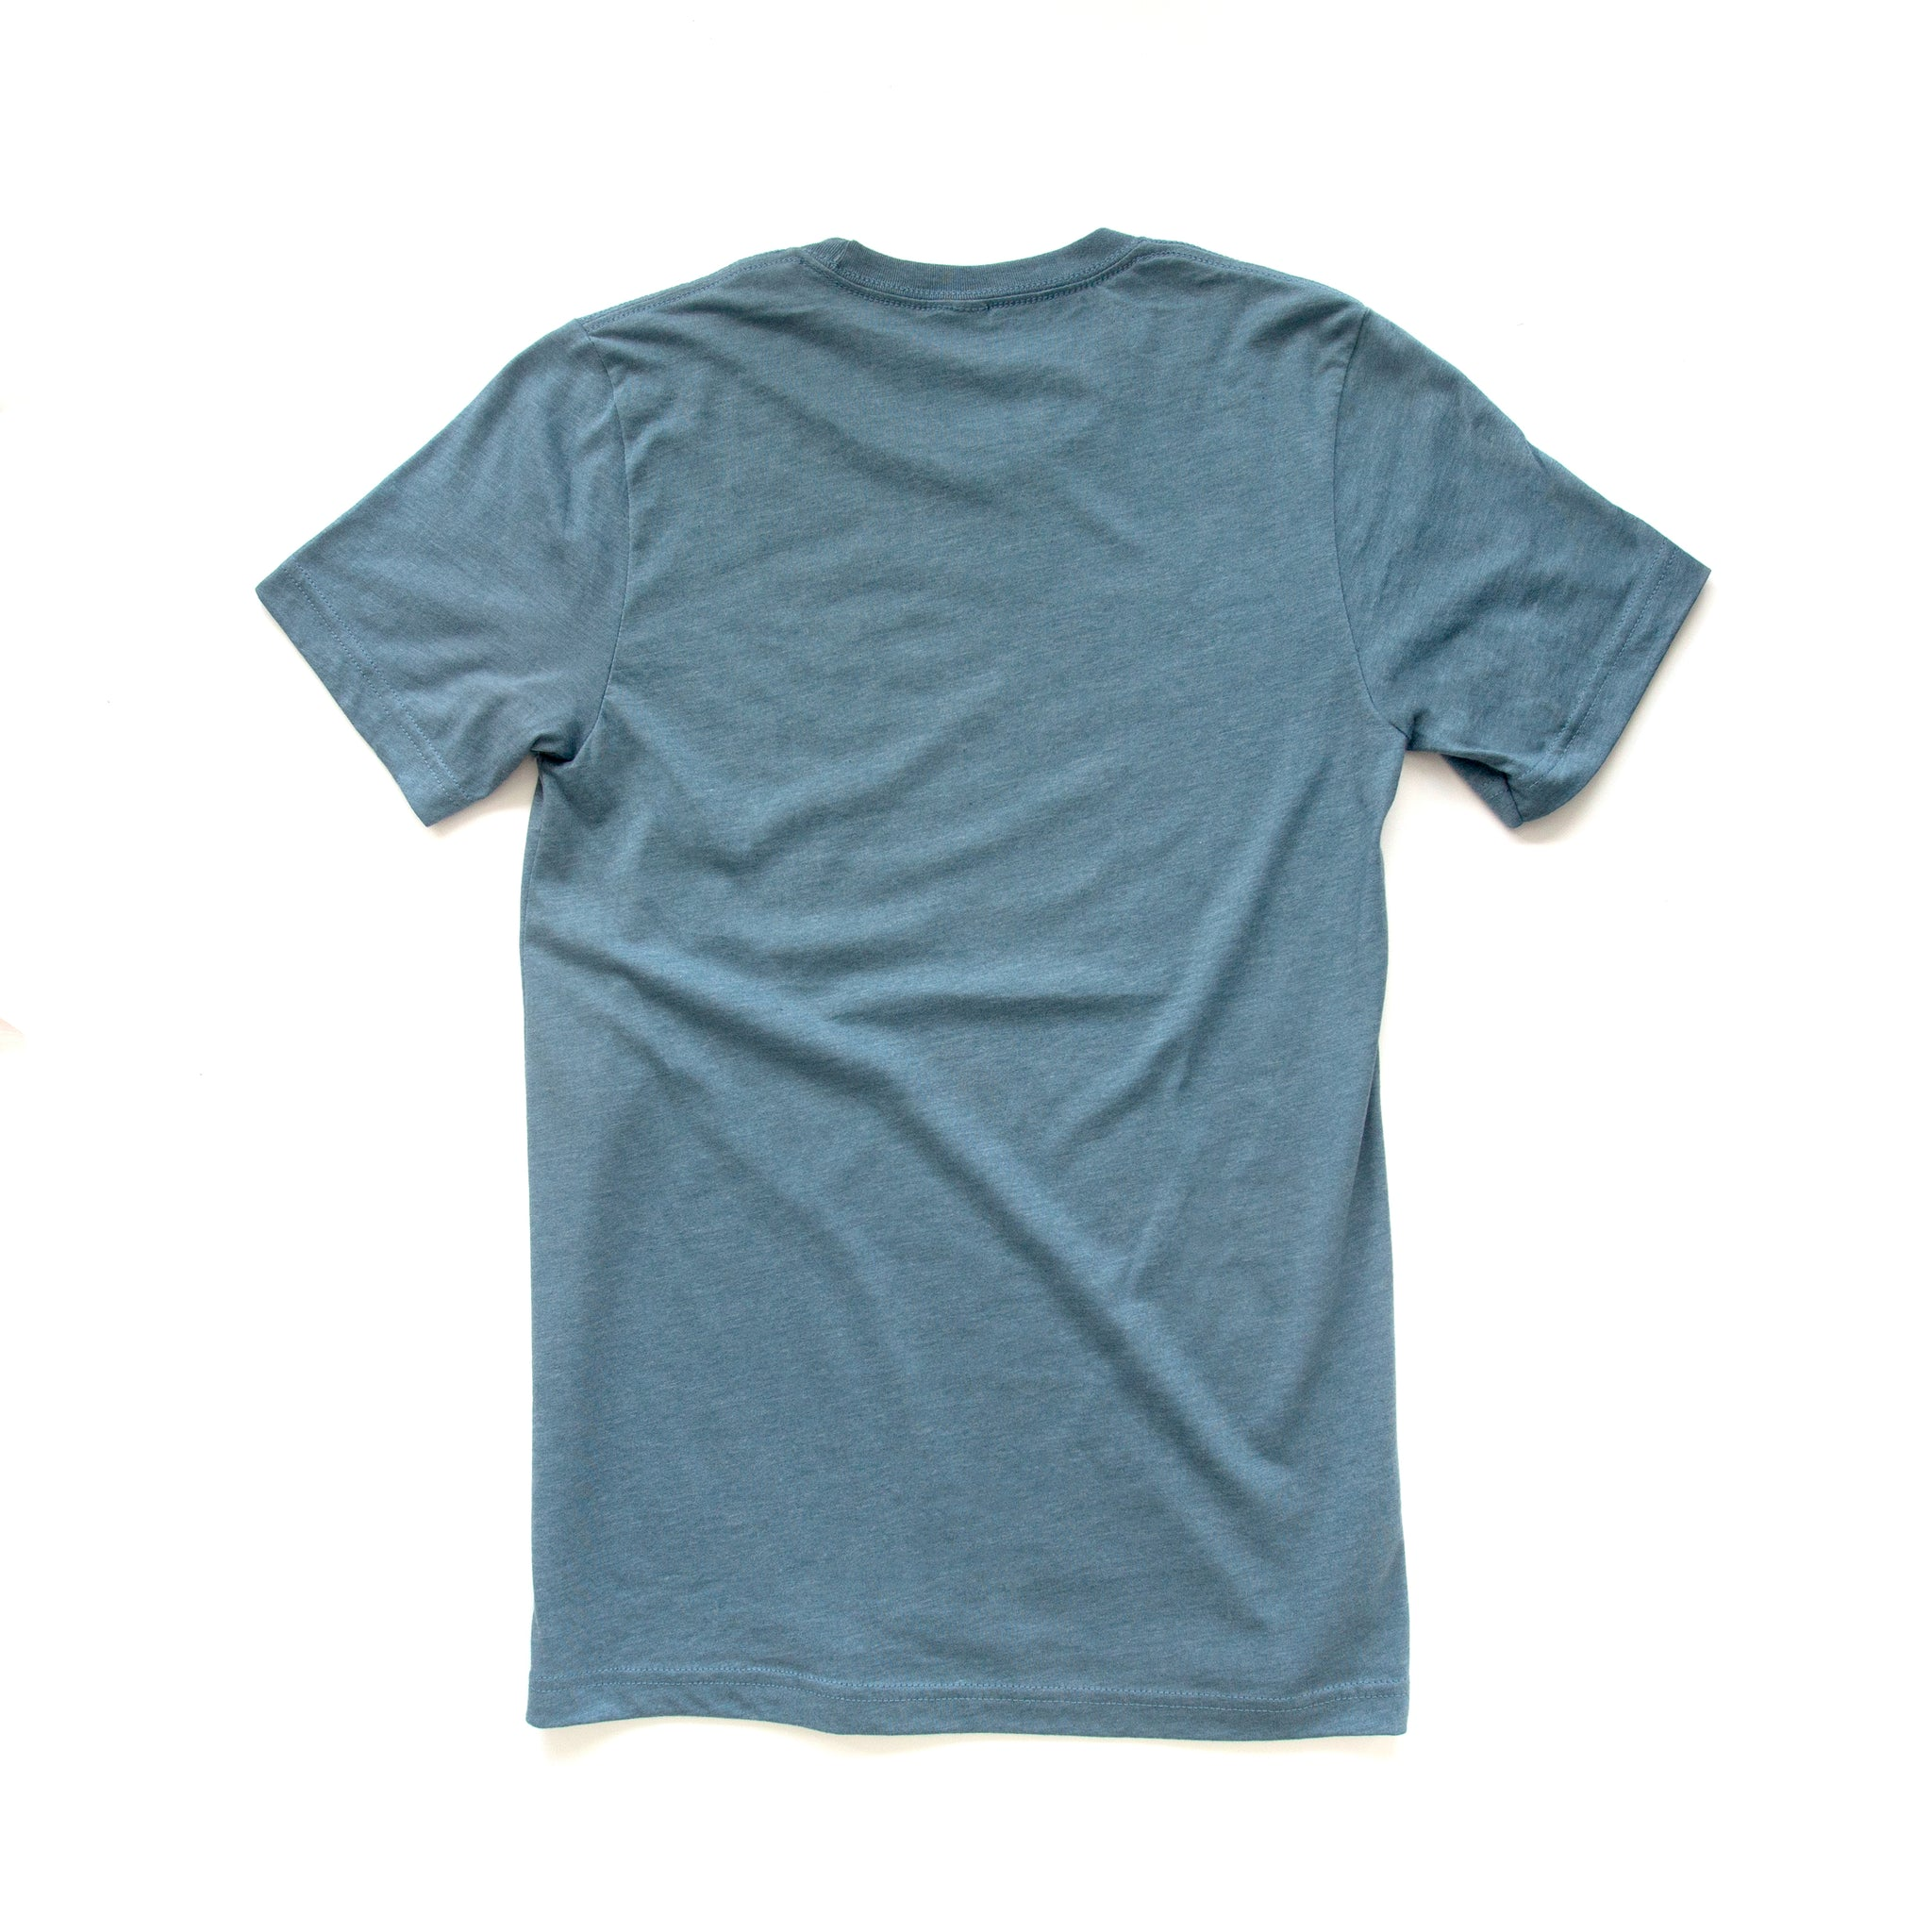 Back view of slate gray short-sleeved t-shirt